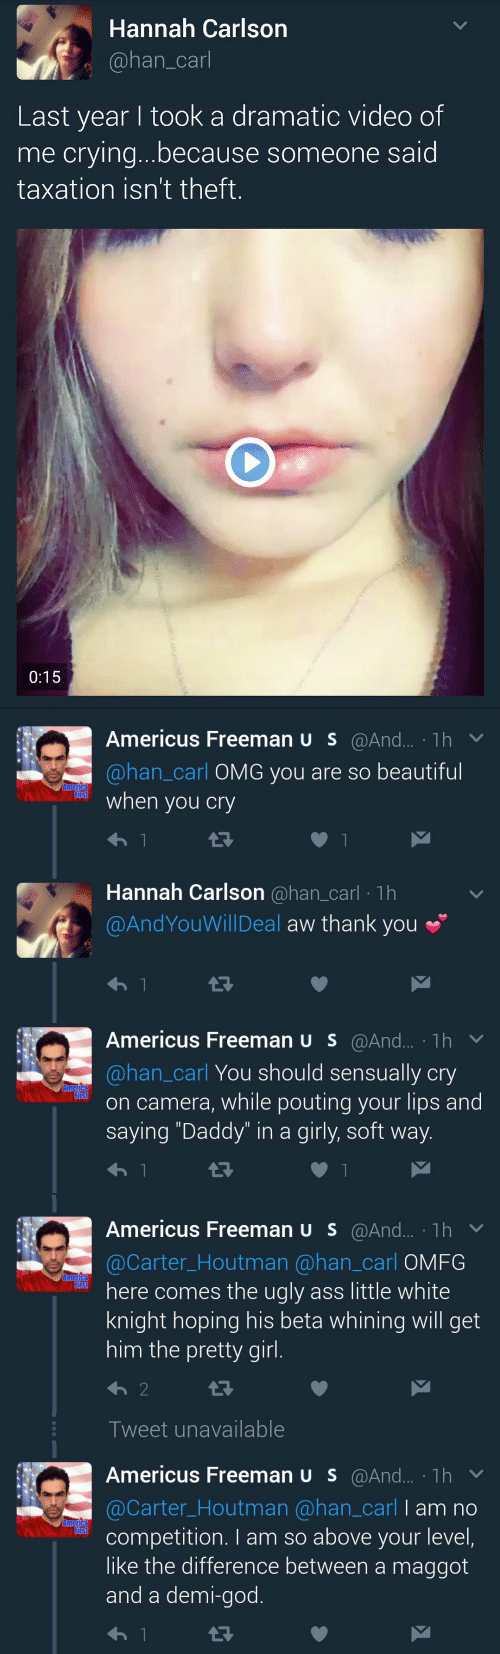 "America, Beautiful, and Crying: Hannah Carlson  @han_carl  Last year I took a dramatic video of  me crying...because someone said  taxation isn't theft.  0:15   Americus Freeman U s@And... 1h  @han_carl OMG you are so beautiful  America  First  when  you cry  t7  Hannah Carlson @han_carl 1h  @AndYouWillDeal aw thank you  t7  1  Americus Freeman U s@And... 1h  @han_carl You should sensually cry  on camera, while pouting your lips and  saying ""Daddy"" in a girly, soft way.  America  First   Americus Freeman U s@And... 1h  @Carter_Houtman @han_carl OMFG  here comes the ugly ass little white  knight hoping his beta whining will get  him the pretty girl.  Ametica  First  2  Tweet unavailable  Americus Freeman U S@And... 1h  @Carter_Houtman @han_carl I am no  competition. I am so above your level,  like the difference between a maggot  and a demi-god.  America  First"